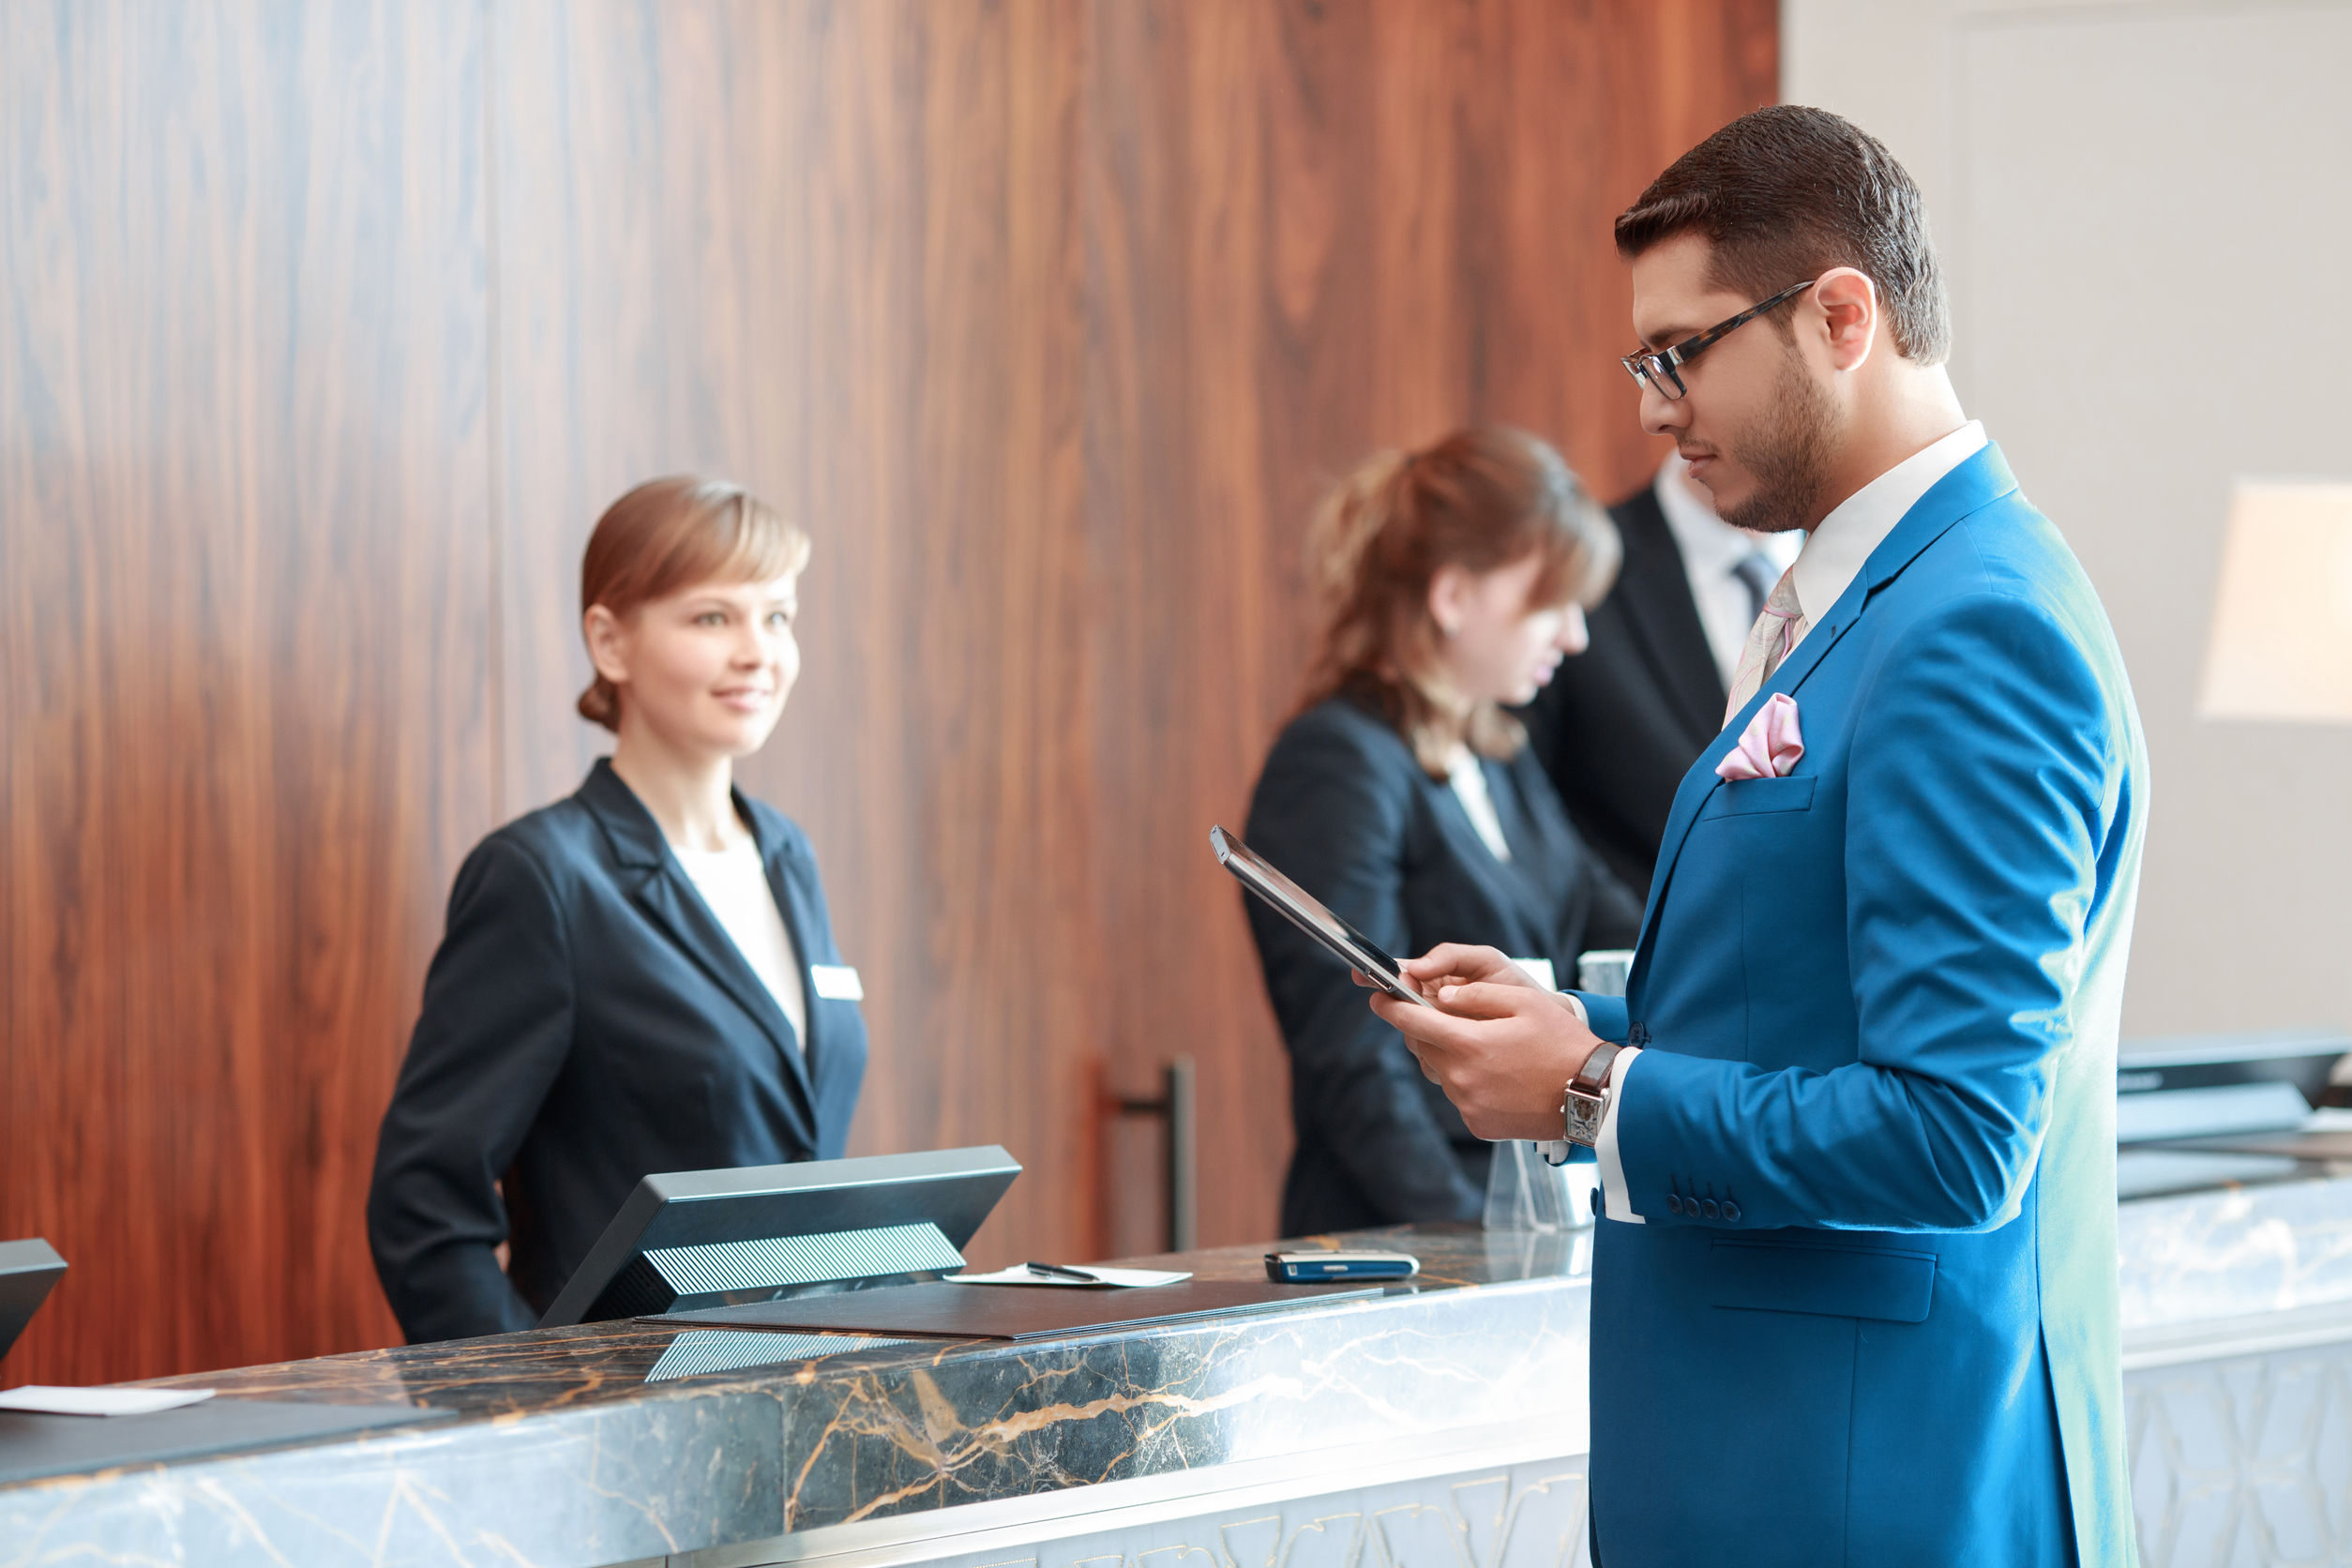 Keep Hotel Guests and Employees Safe